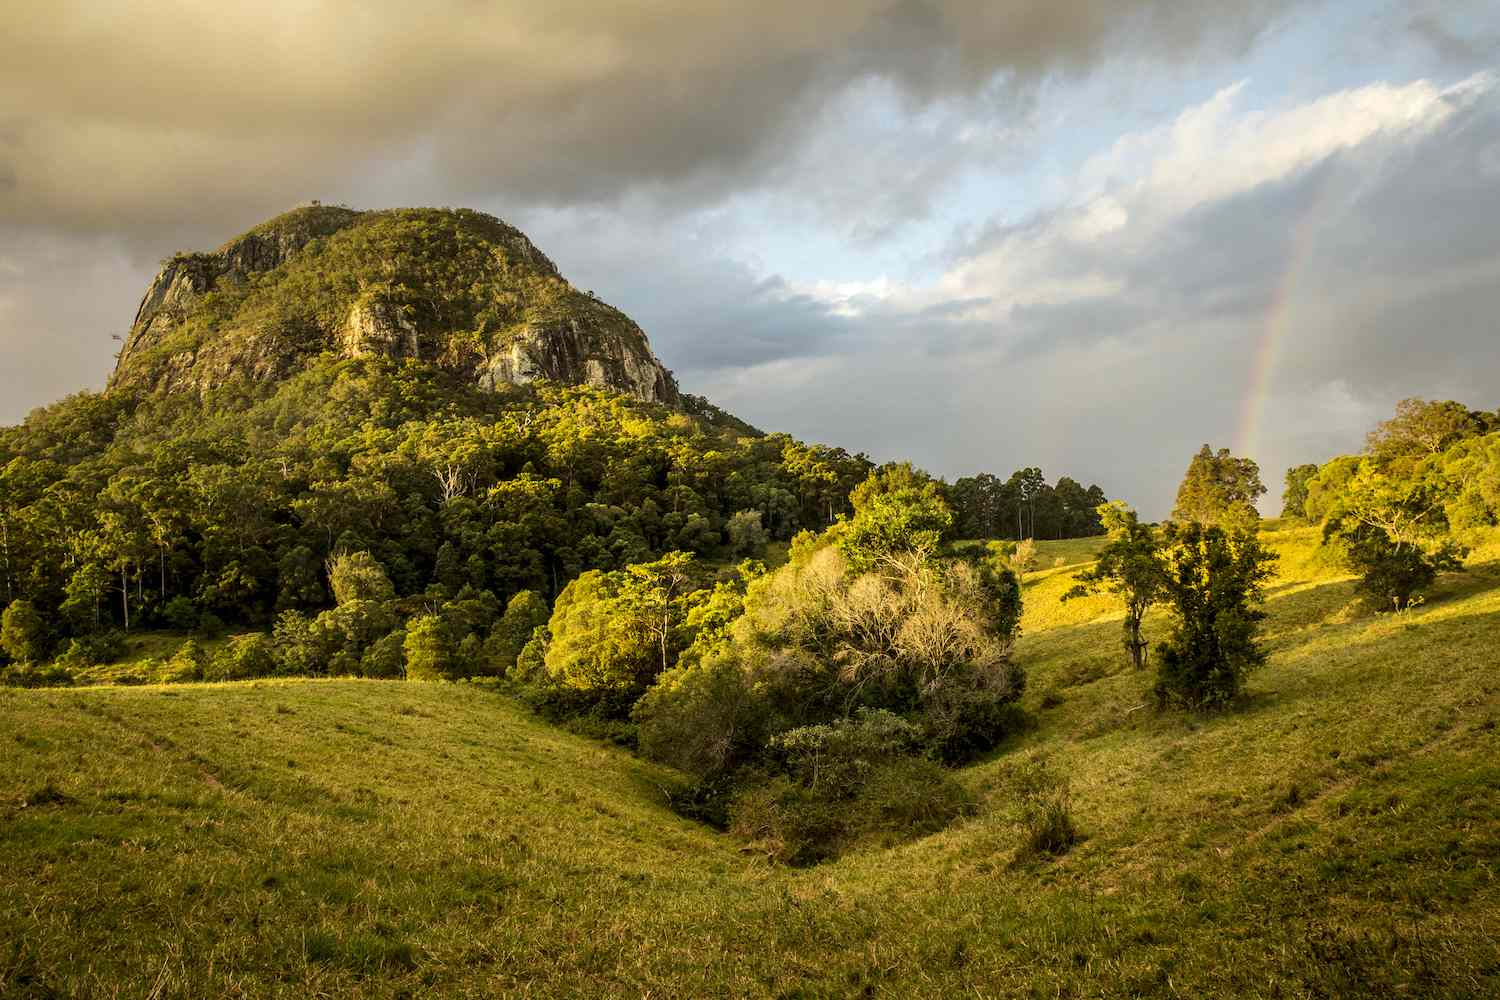 Lush, green trees cover Mount Cooroora as a rainbow casts down upon the hills below it